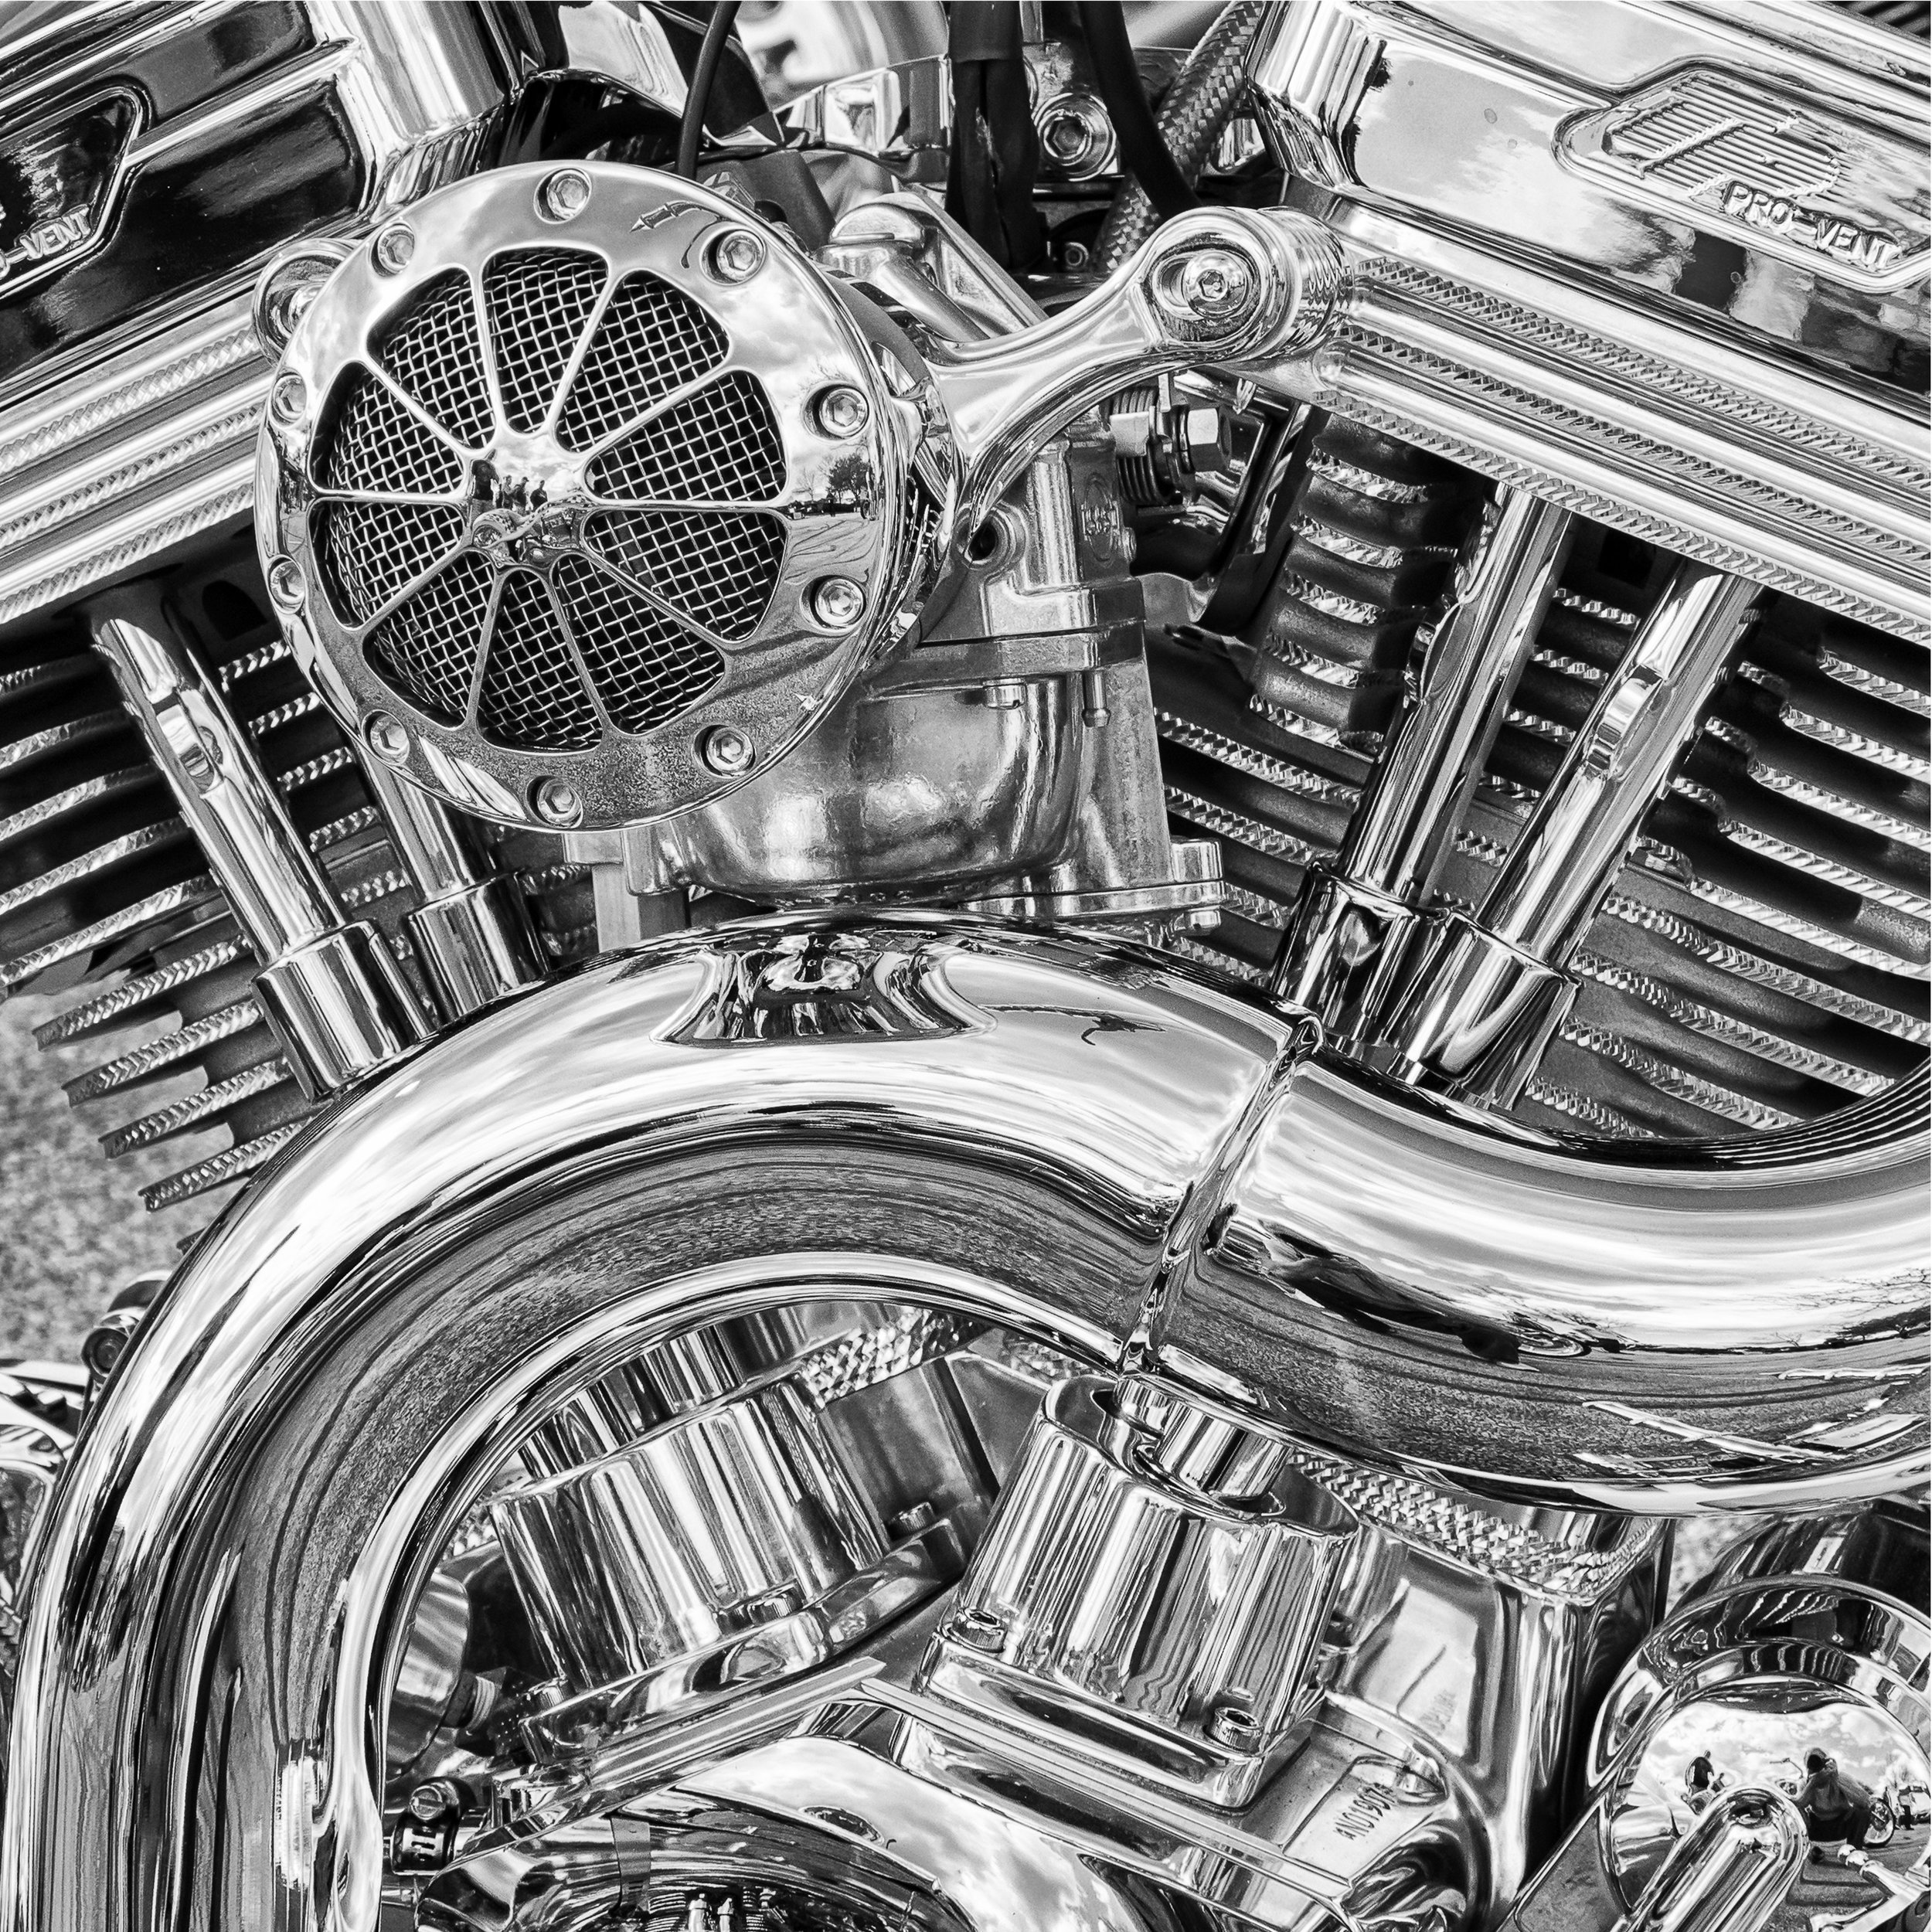 Black and white abstract detailed shot of a motorcycle image. Copyright Bill McSherry.